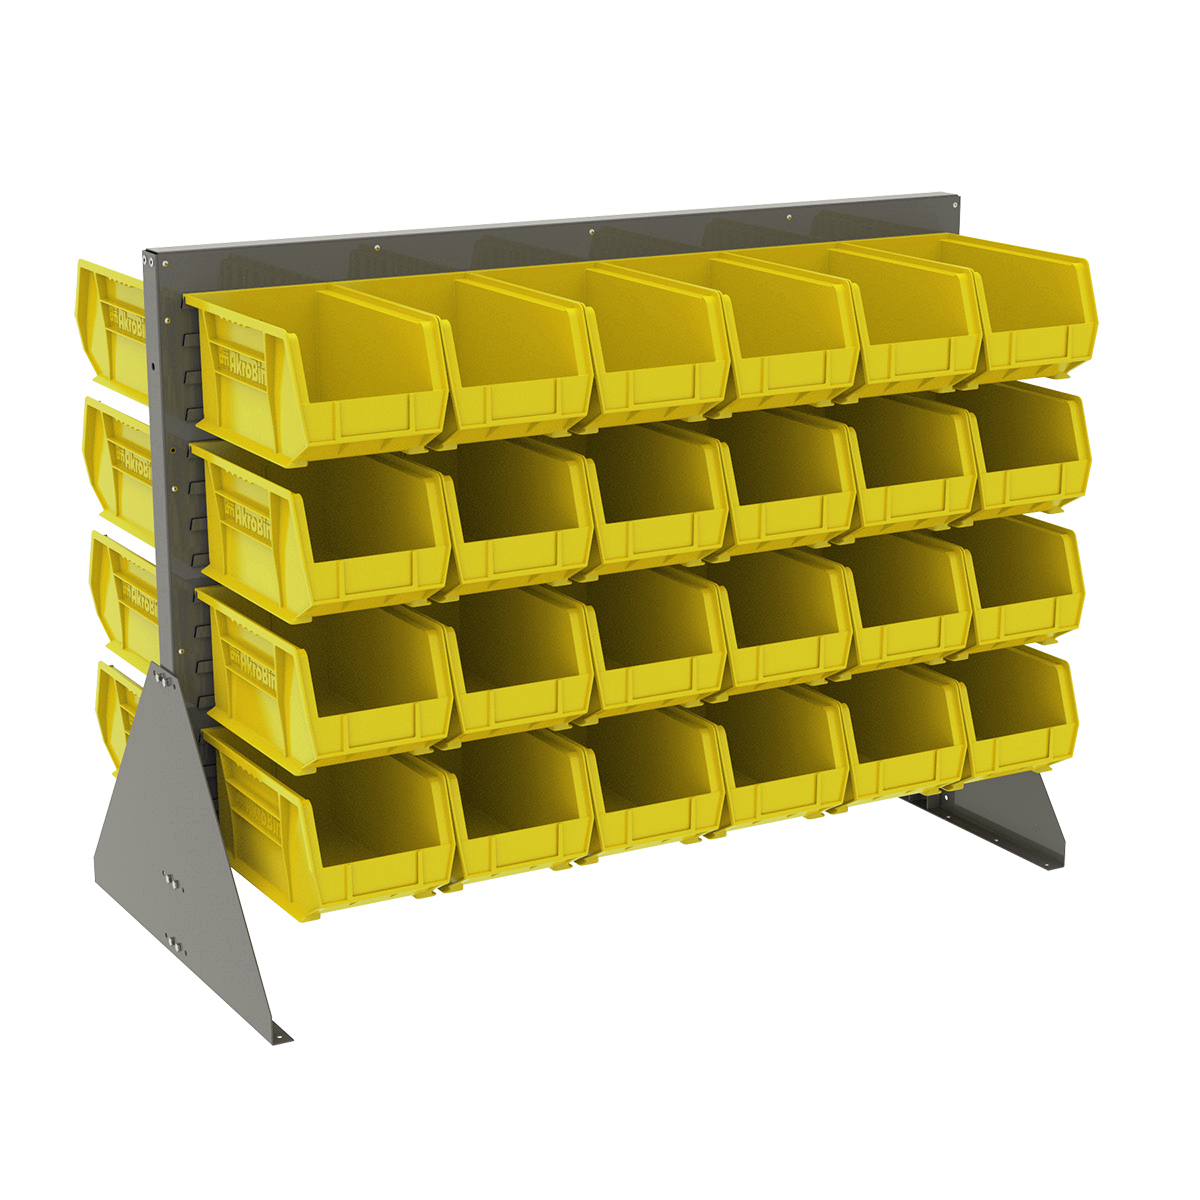 Item DISCONTINUED by Manufacturer.  Low Profile Floor Rack, 2-Sided w/ 48 AkroBins, Gray/Yellow (30607GY240Y).  This item sold in carton quantities of 1.